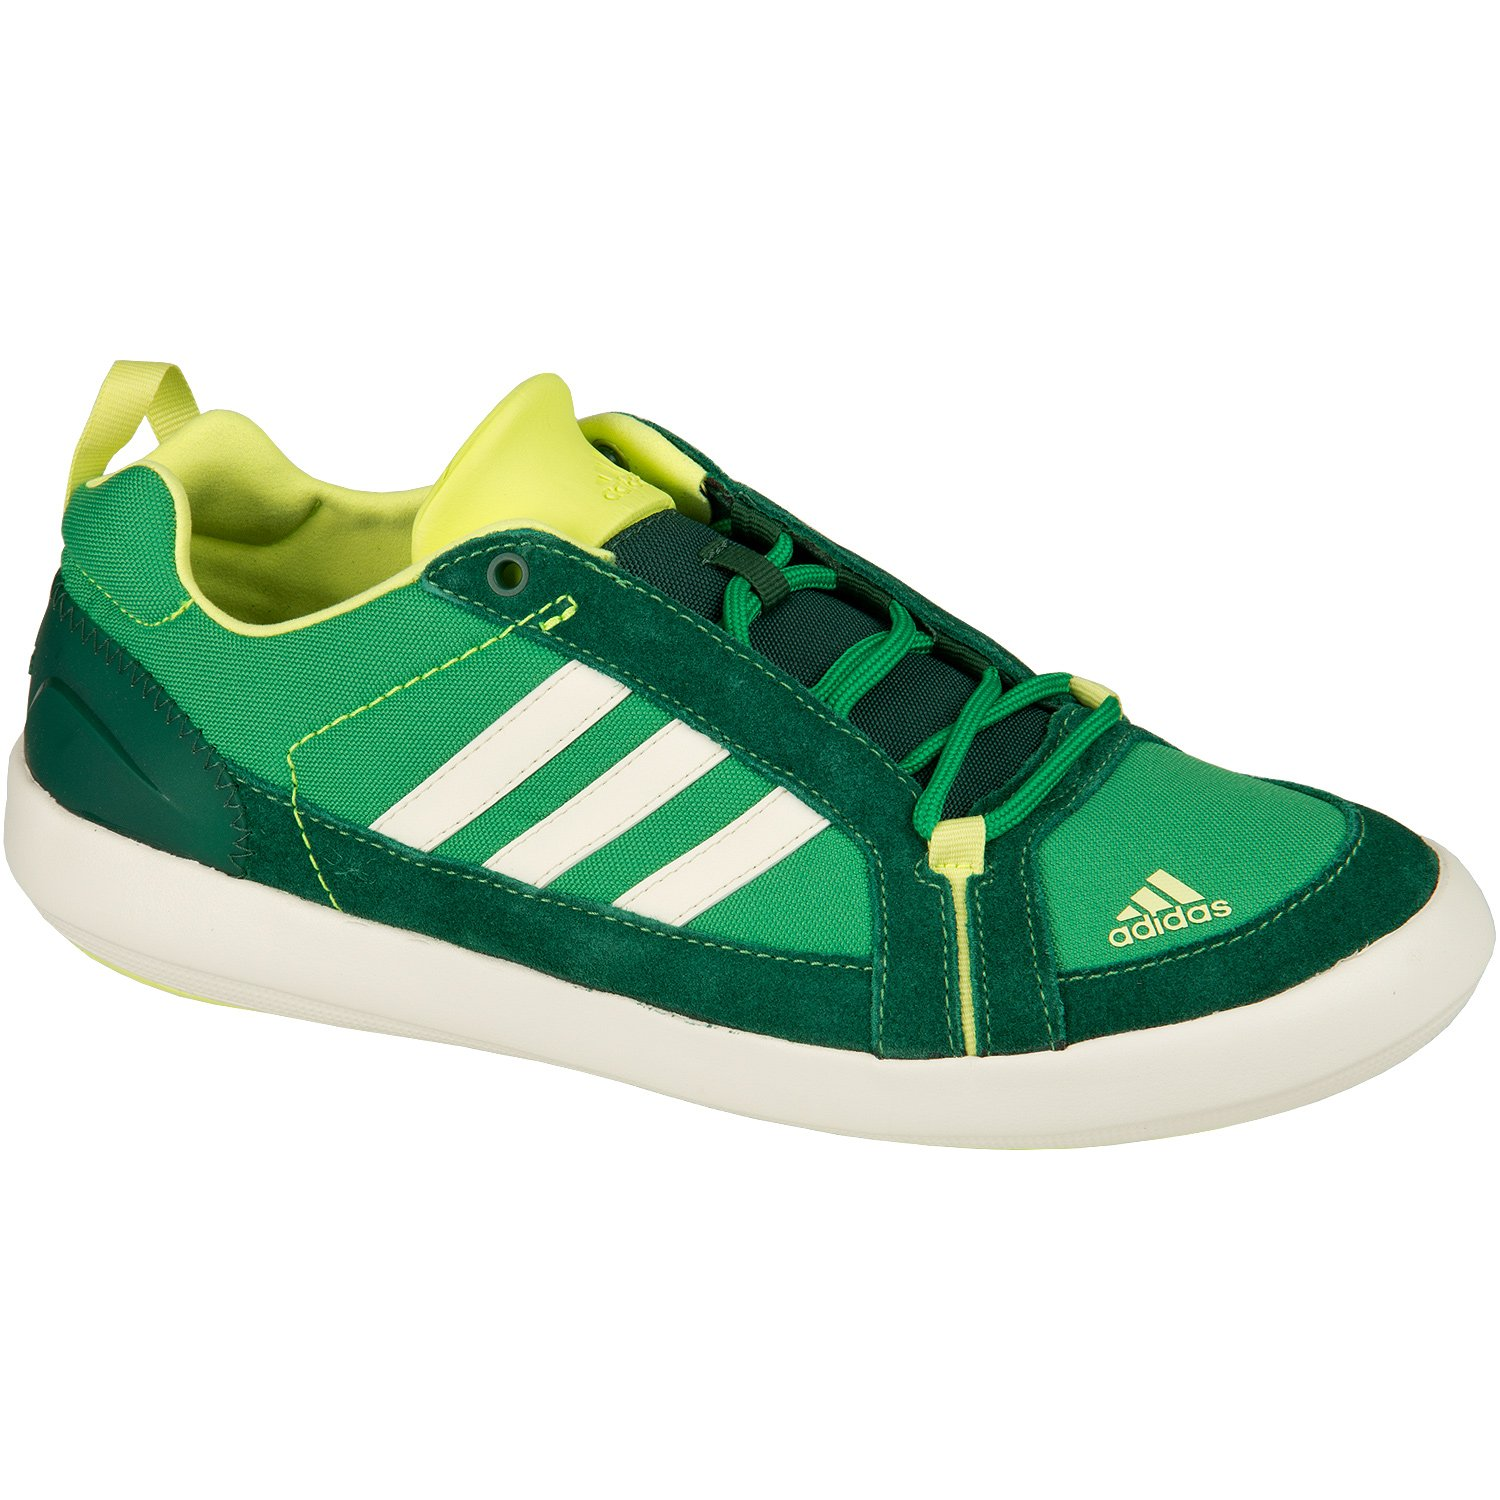 Adidas Men'S Adidas Sport Performance Boat Lace Dlx Sneakers